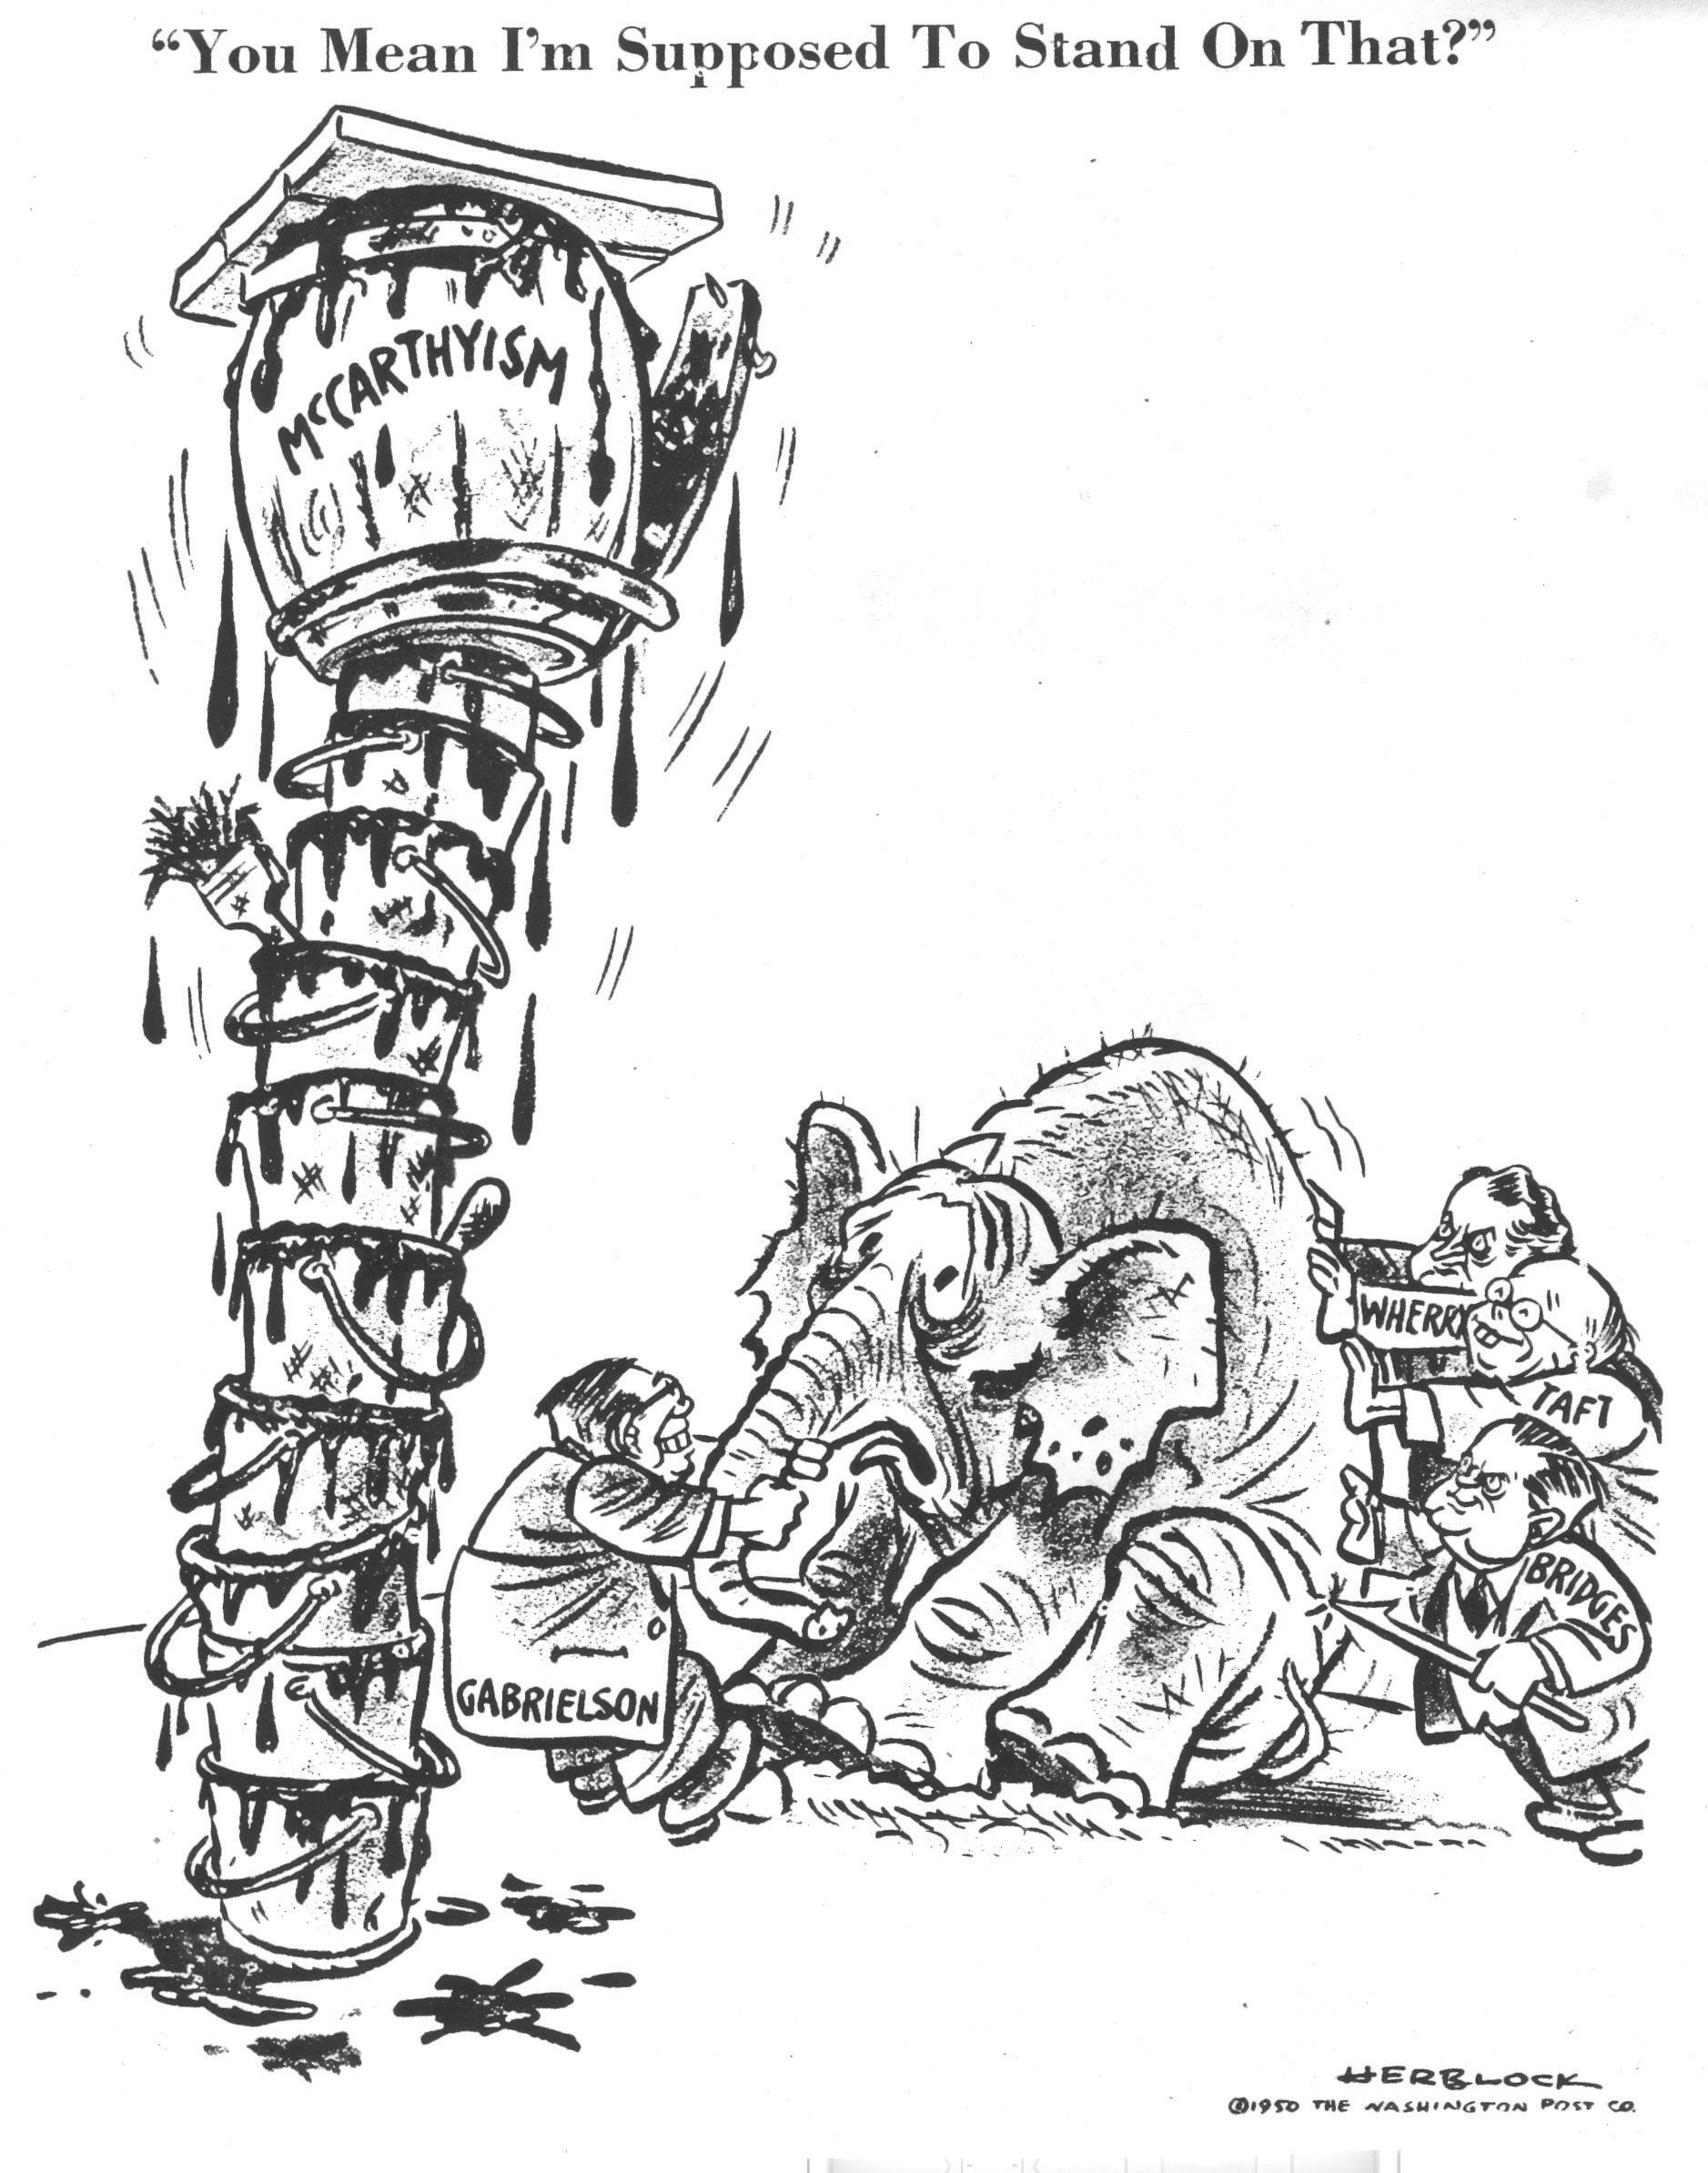 Cartoon of Democrats pulling an elephant to stand on top